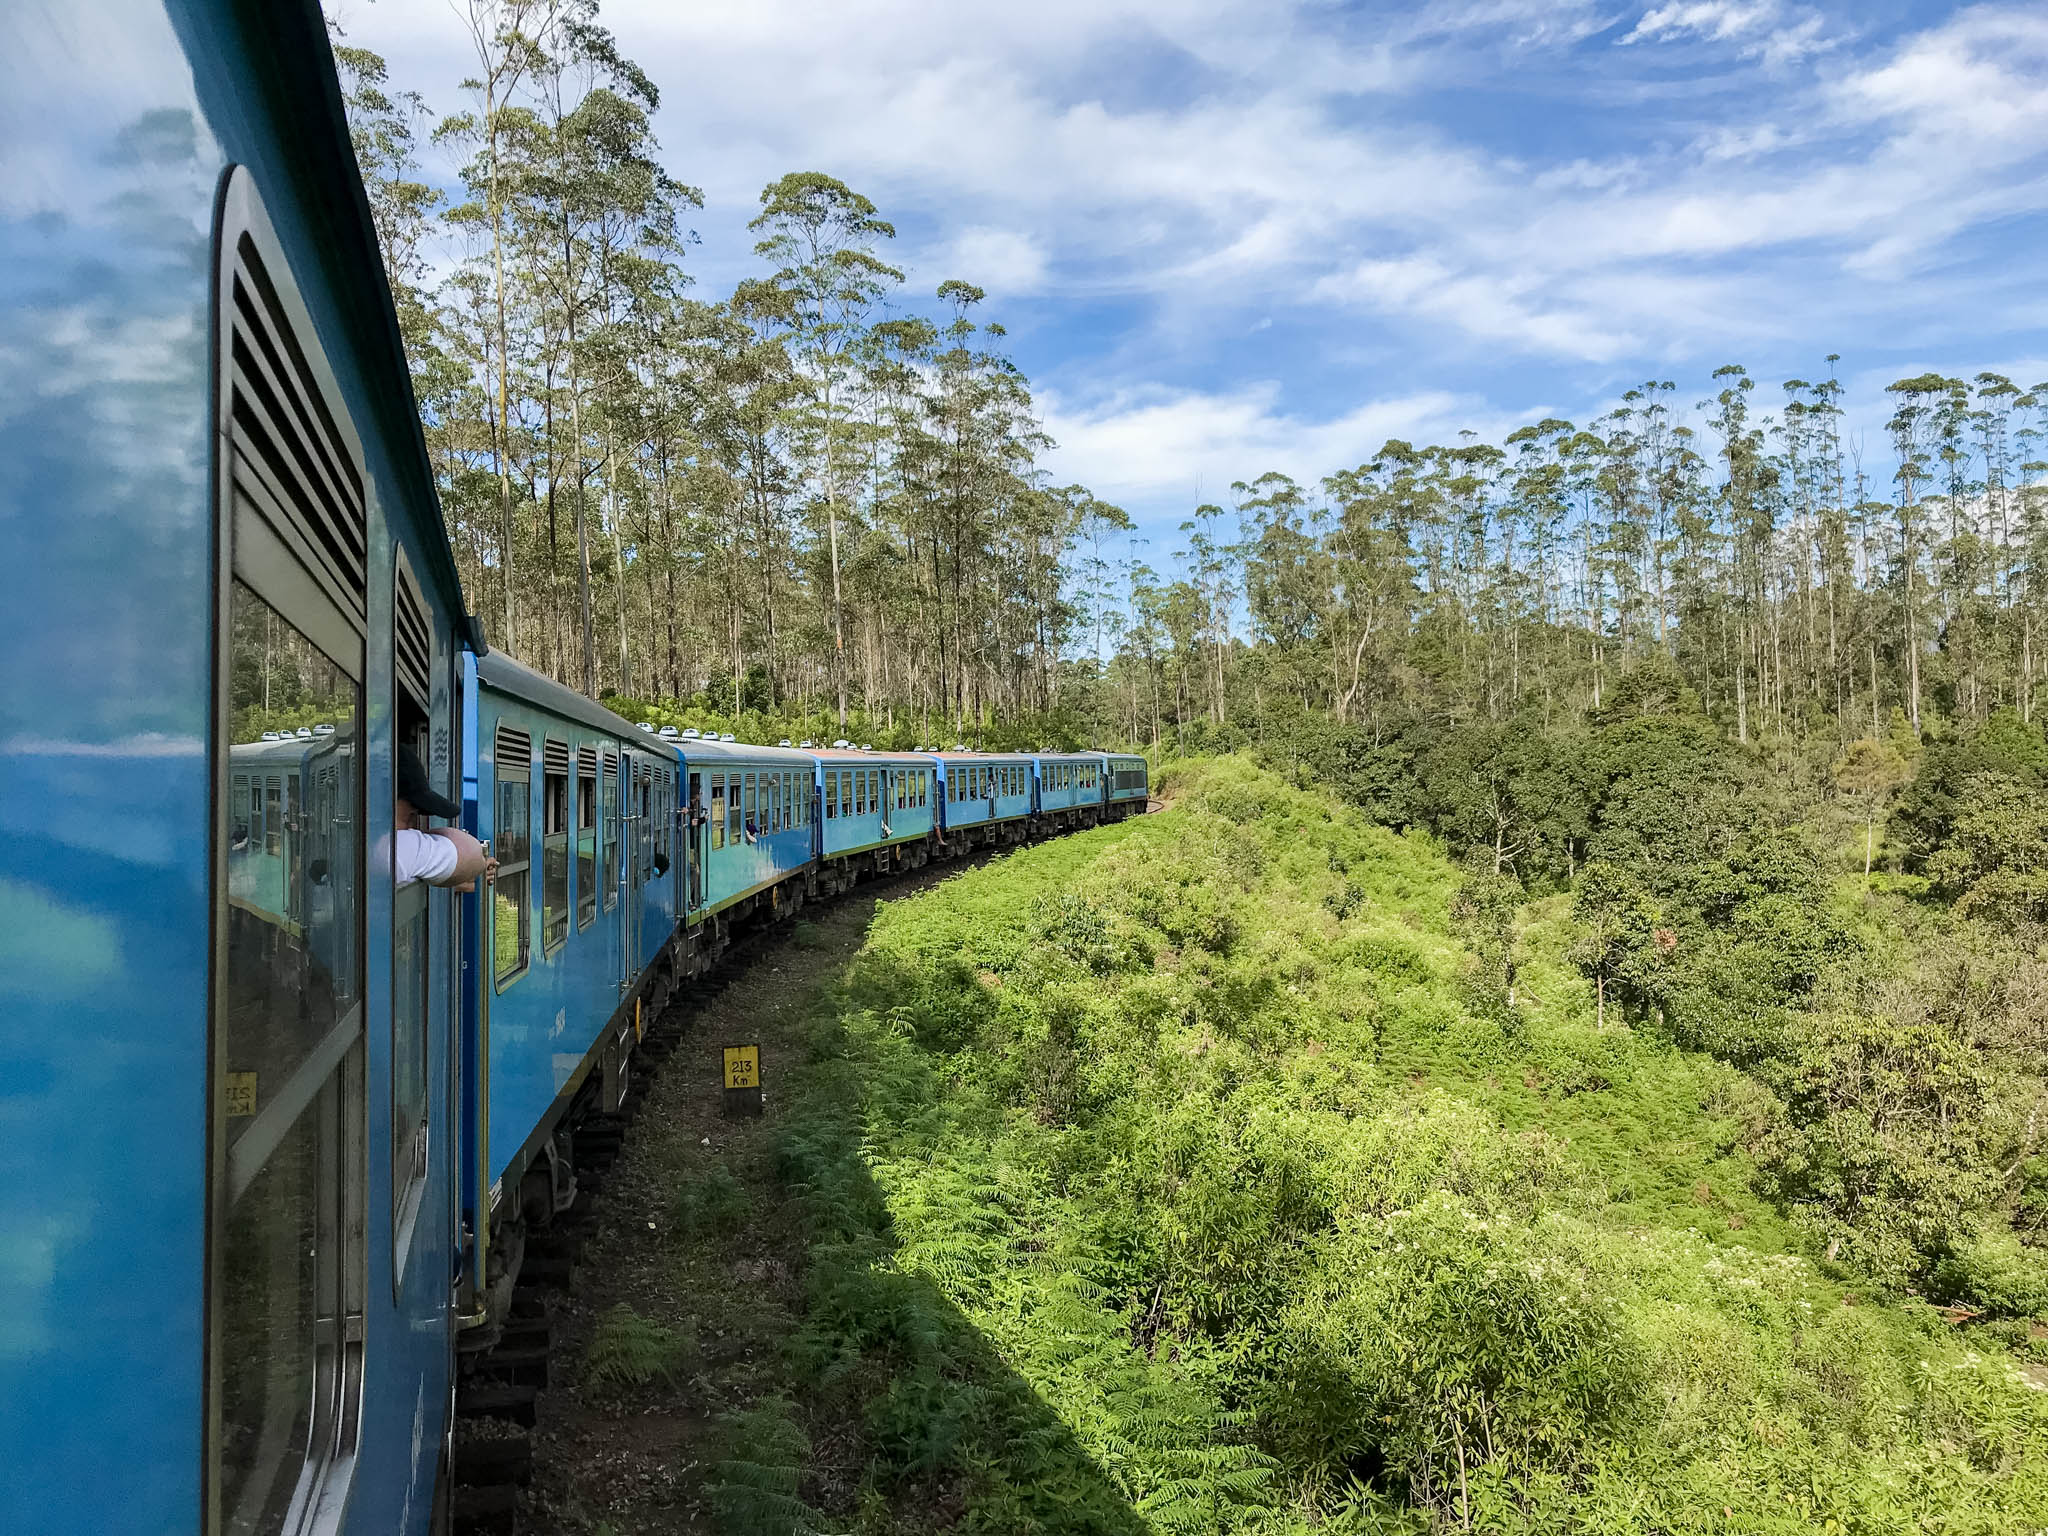 The Most Beautiful Train Ride in the World: Ella to Kandy